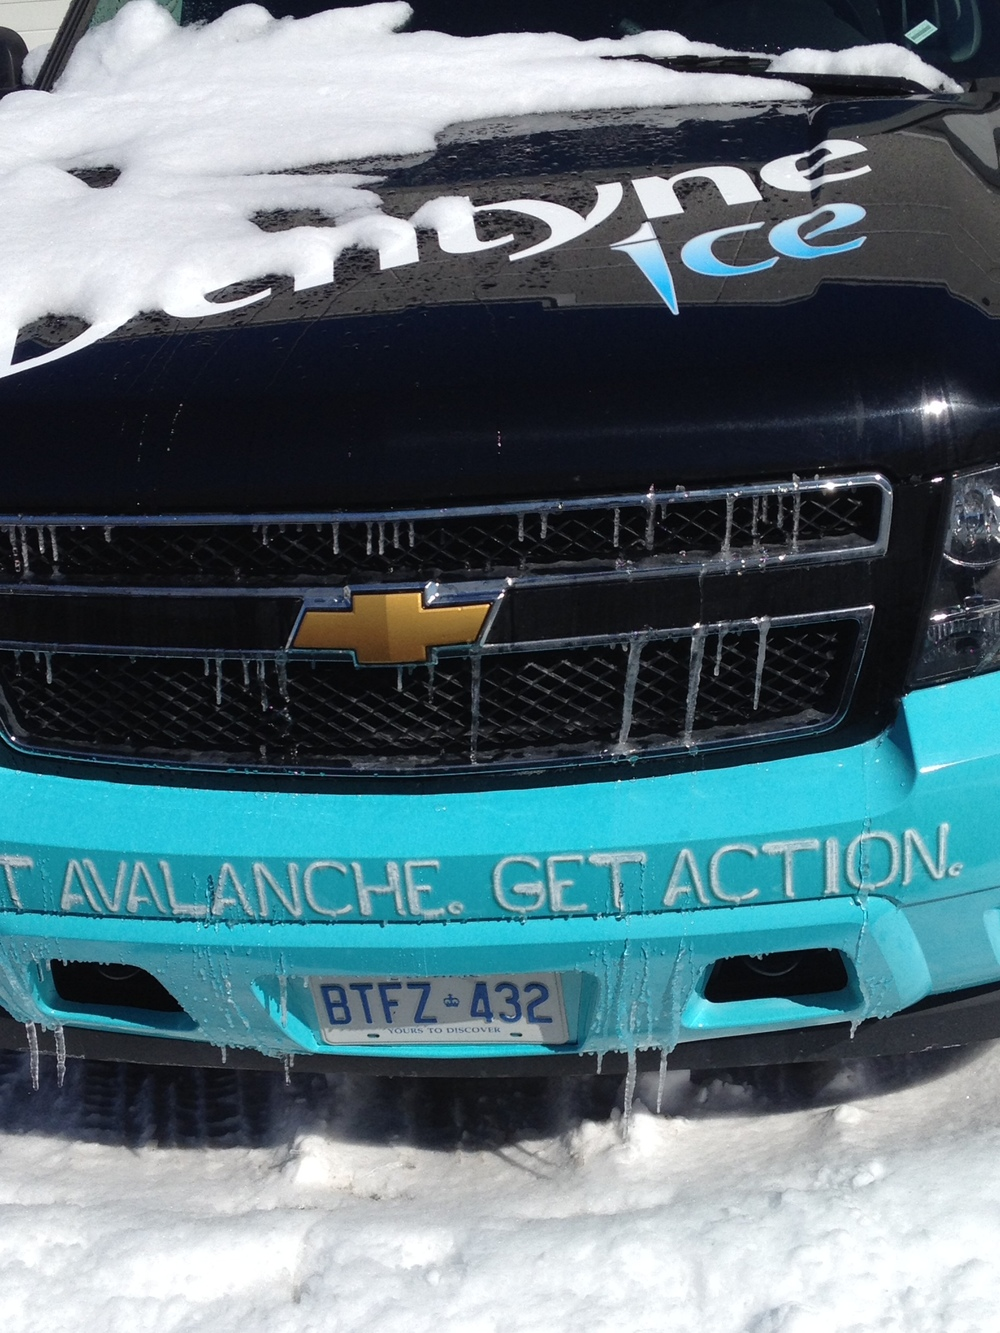 Dentyne Ice vehicle wrap (partial)